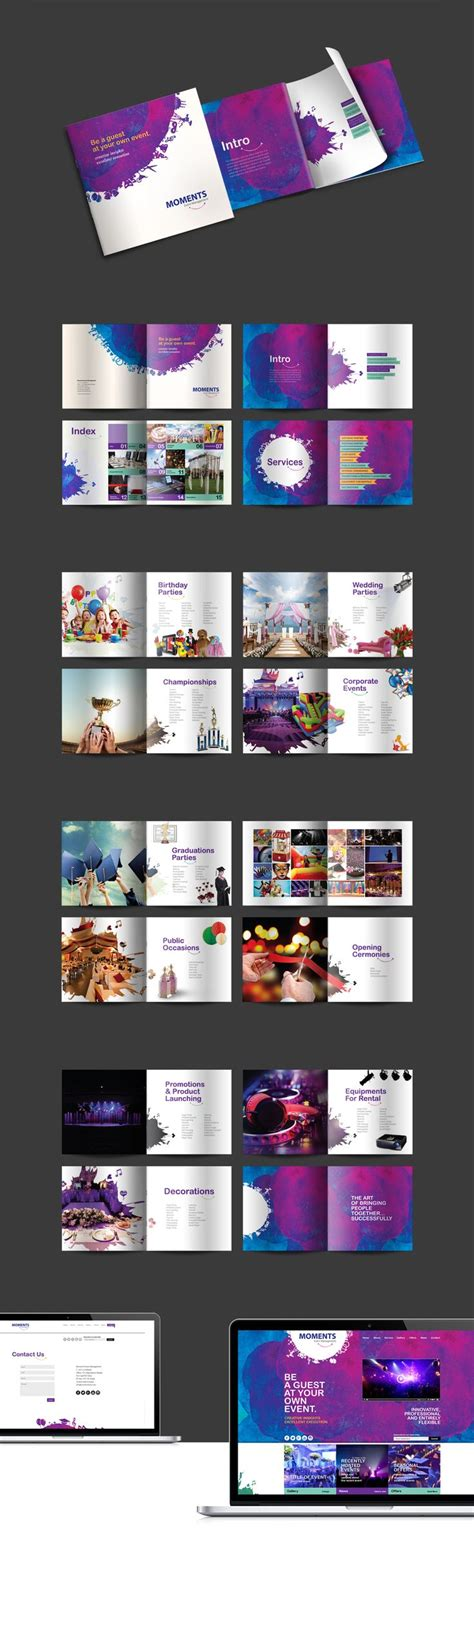 design event based brochure design created for an event management company